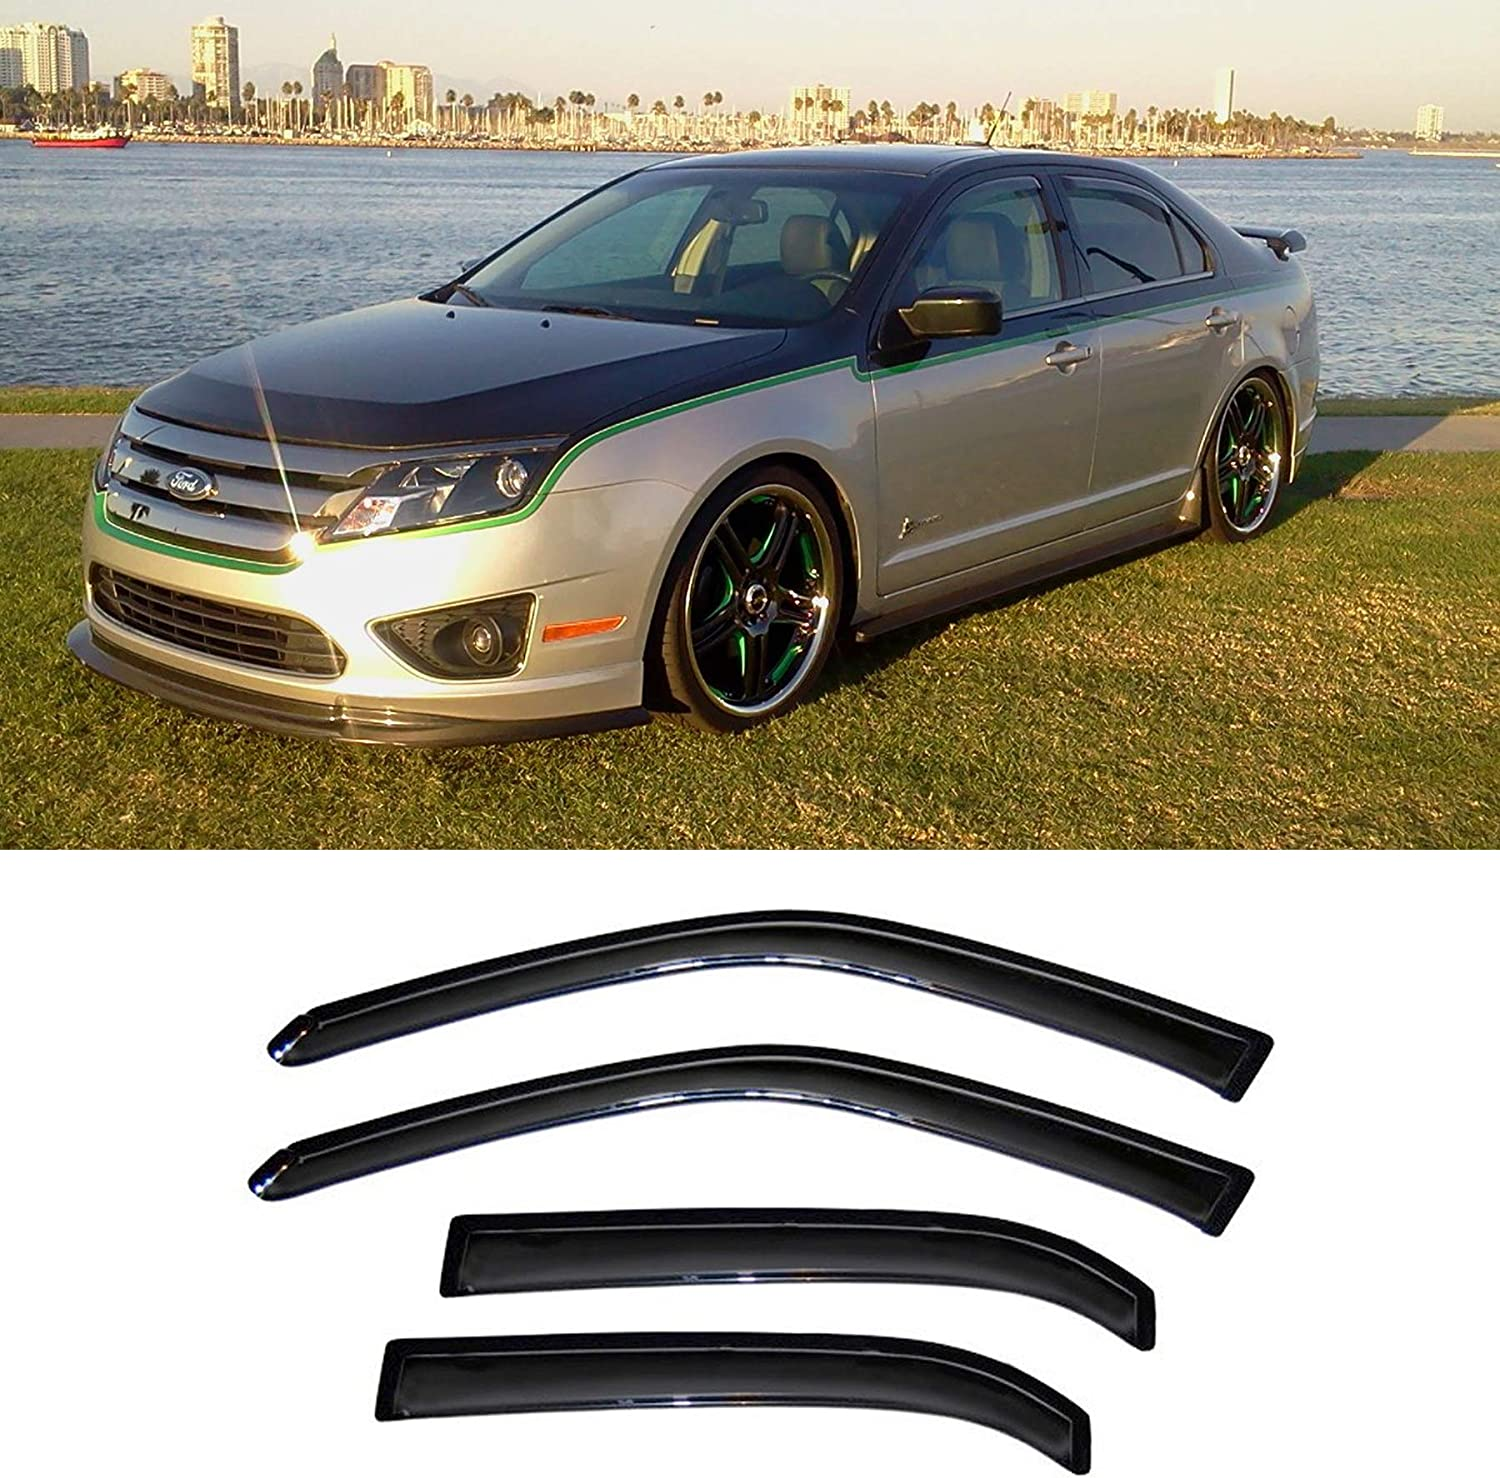 Light Tinted Out-Channel Vent Visor Deflector 4pcs For 2006-2012 Ford Fusion